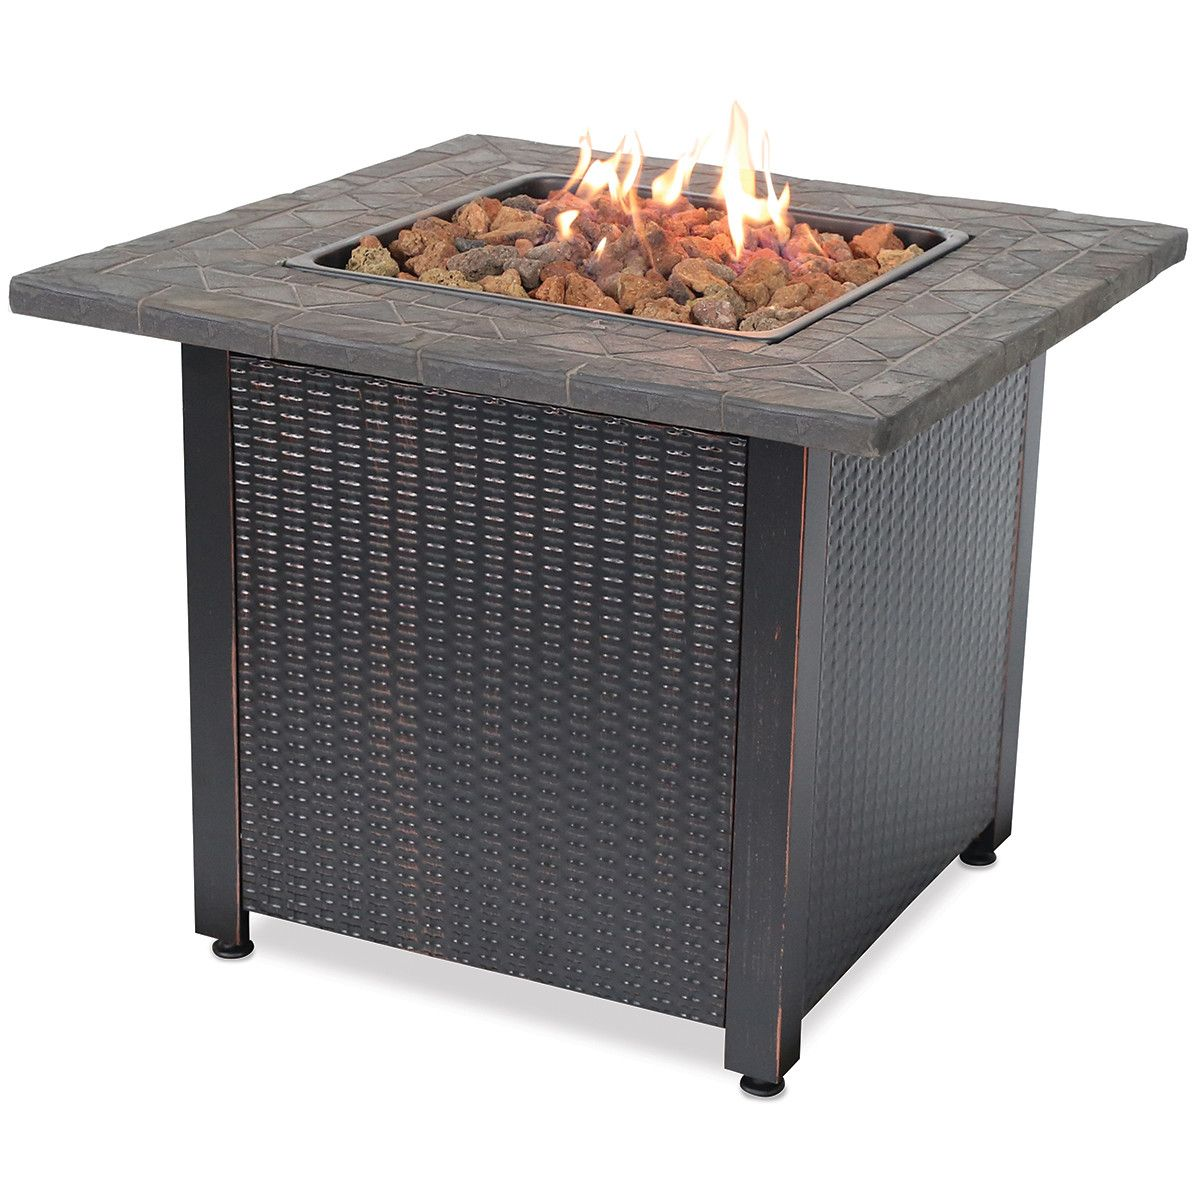 stainless steel propane fire pit table fire pit table gas